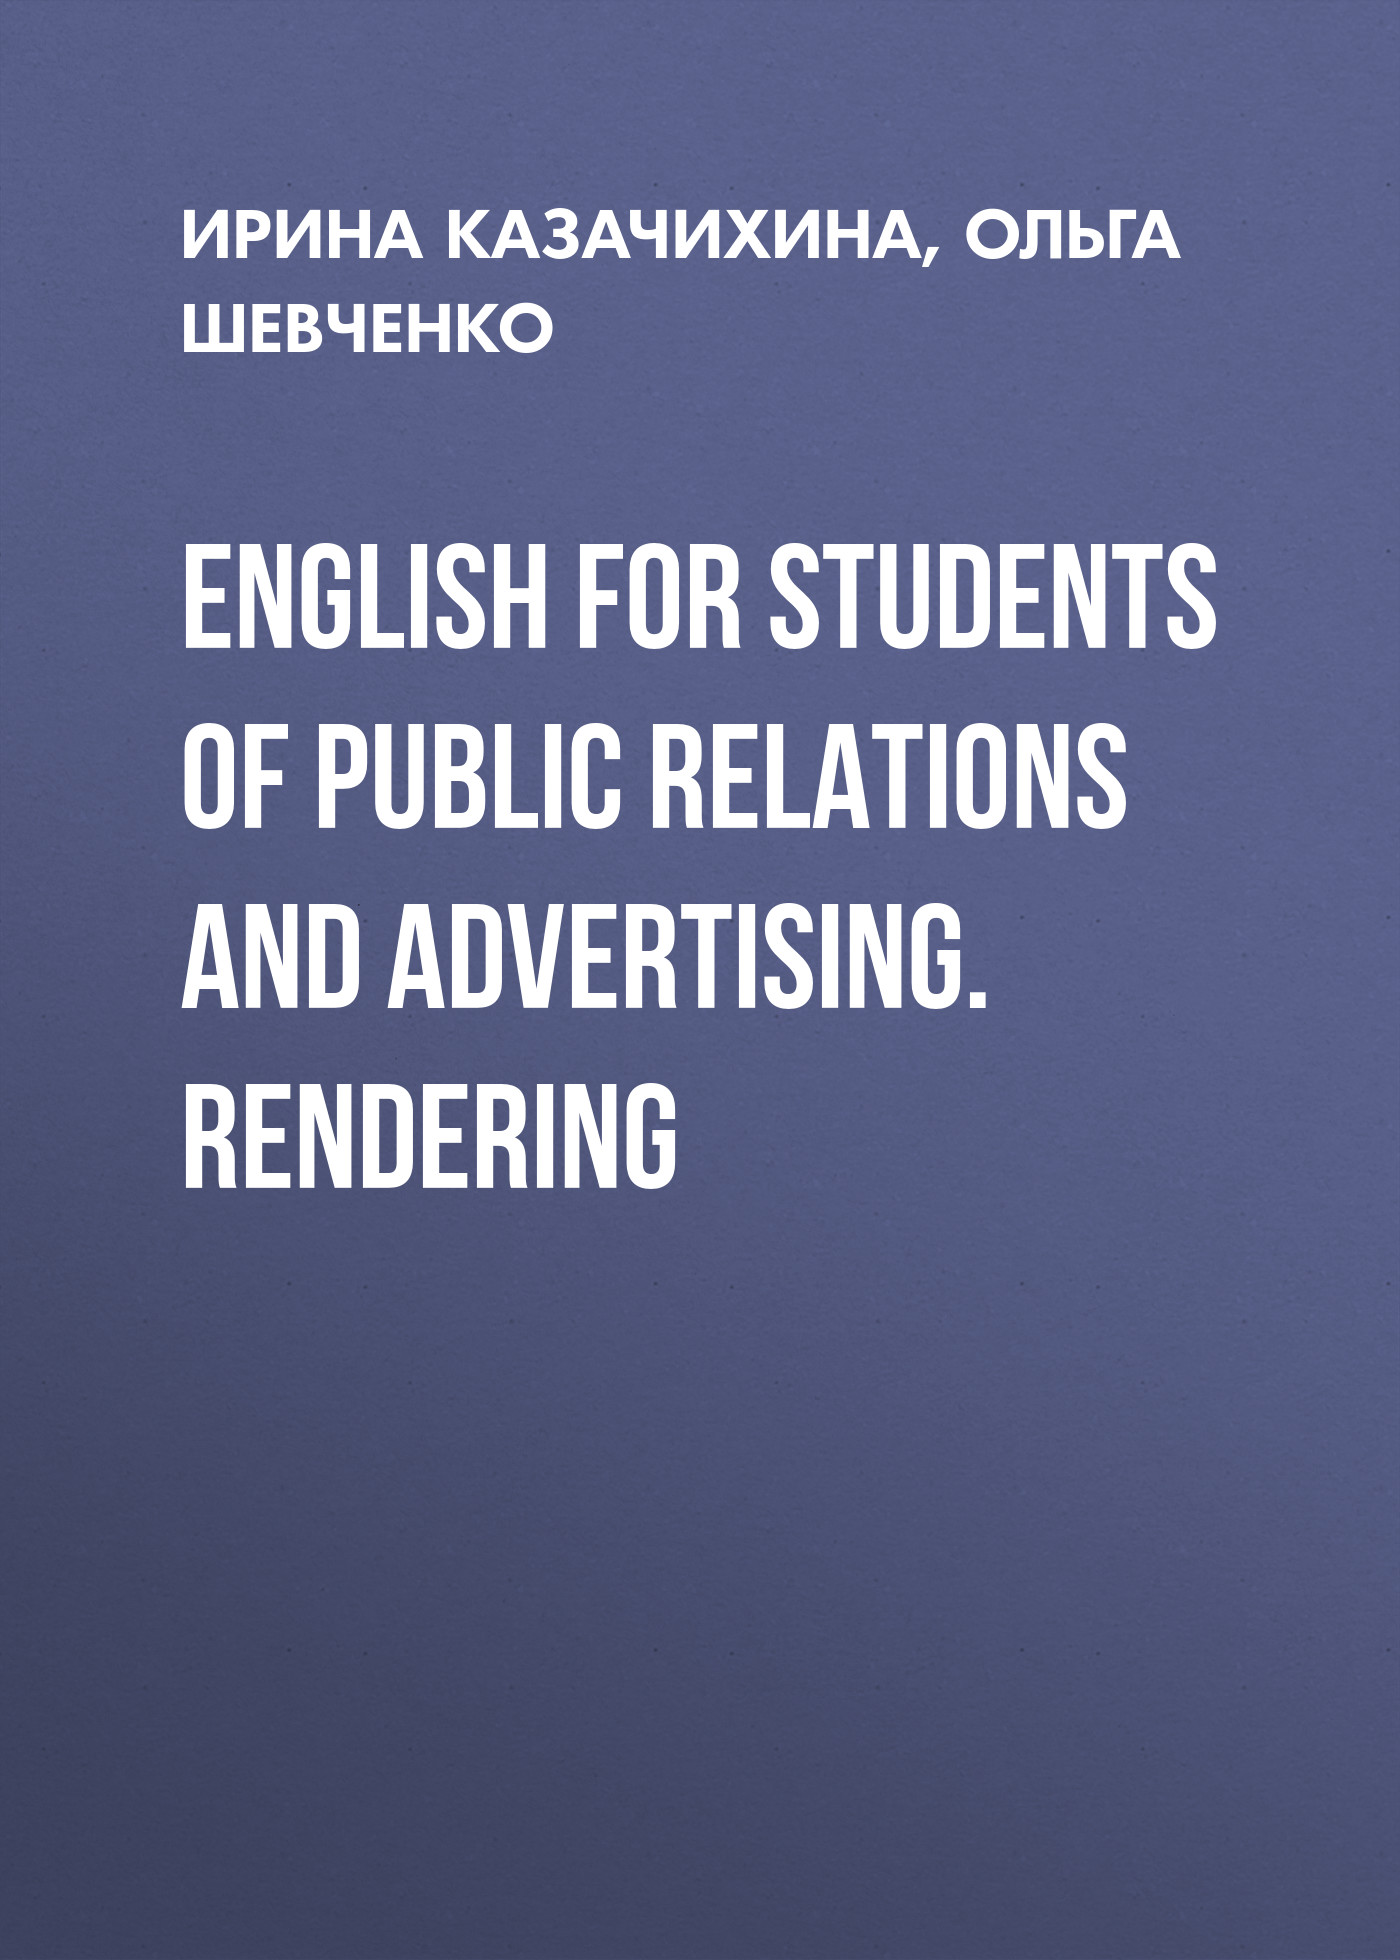 English for Students of Public Relations and Advertising. Rendering